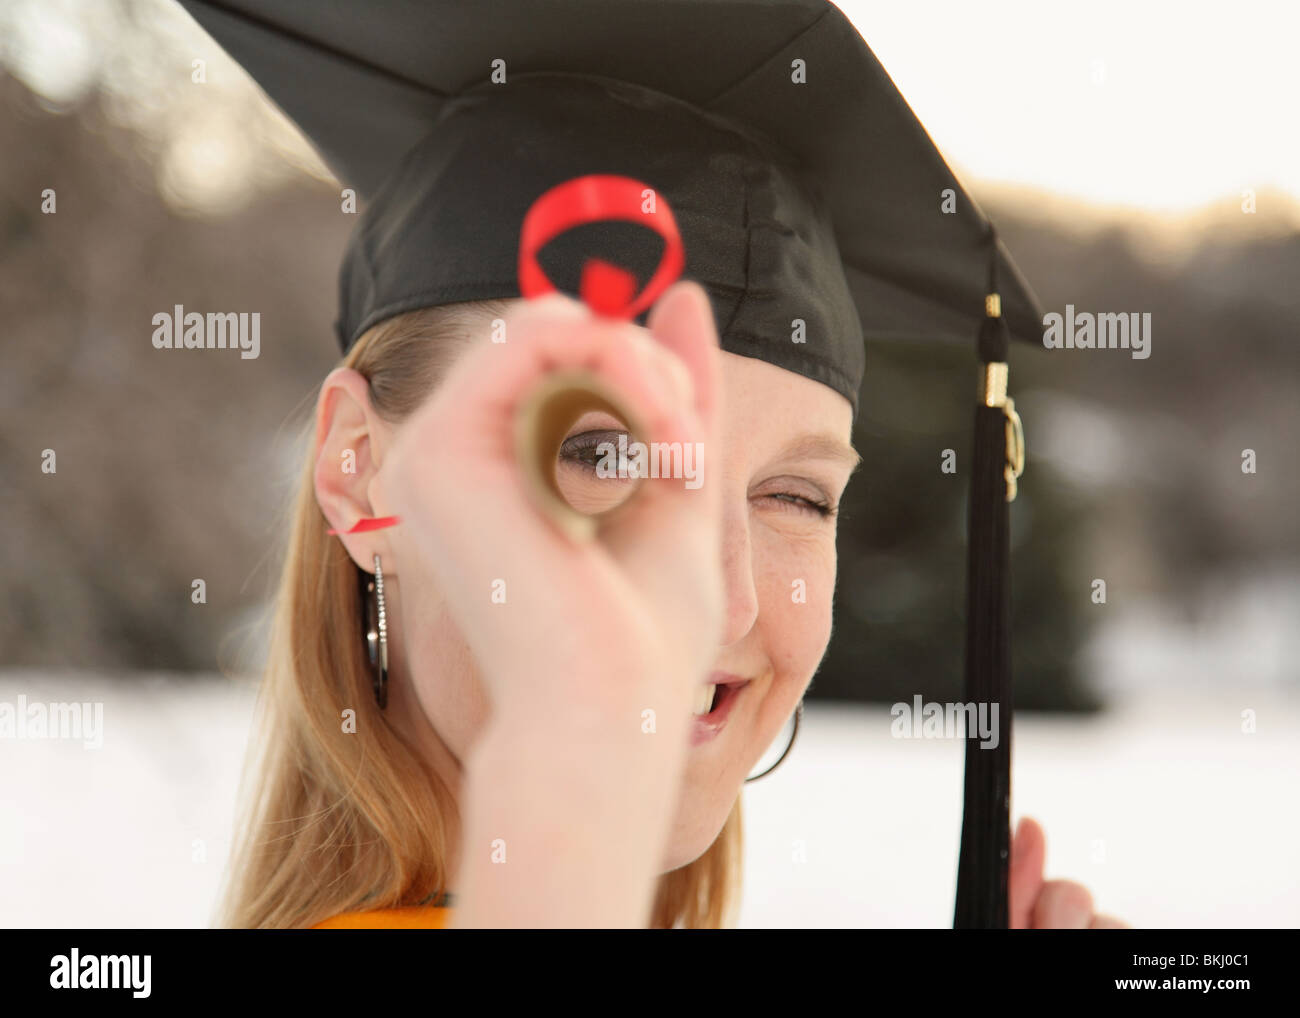 happy girl in graduation cap looking through rolled up diploma - Stock Image